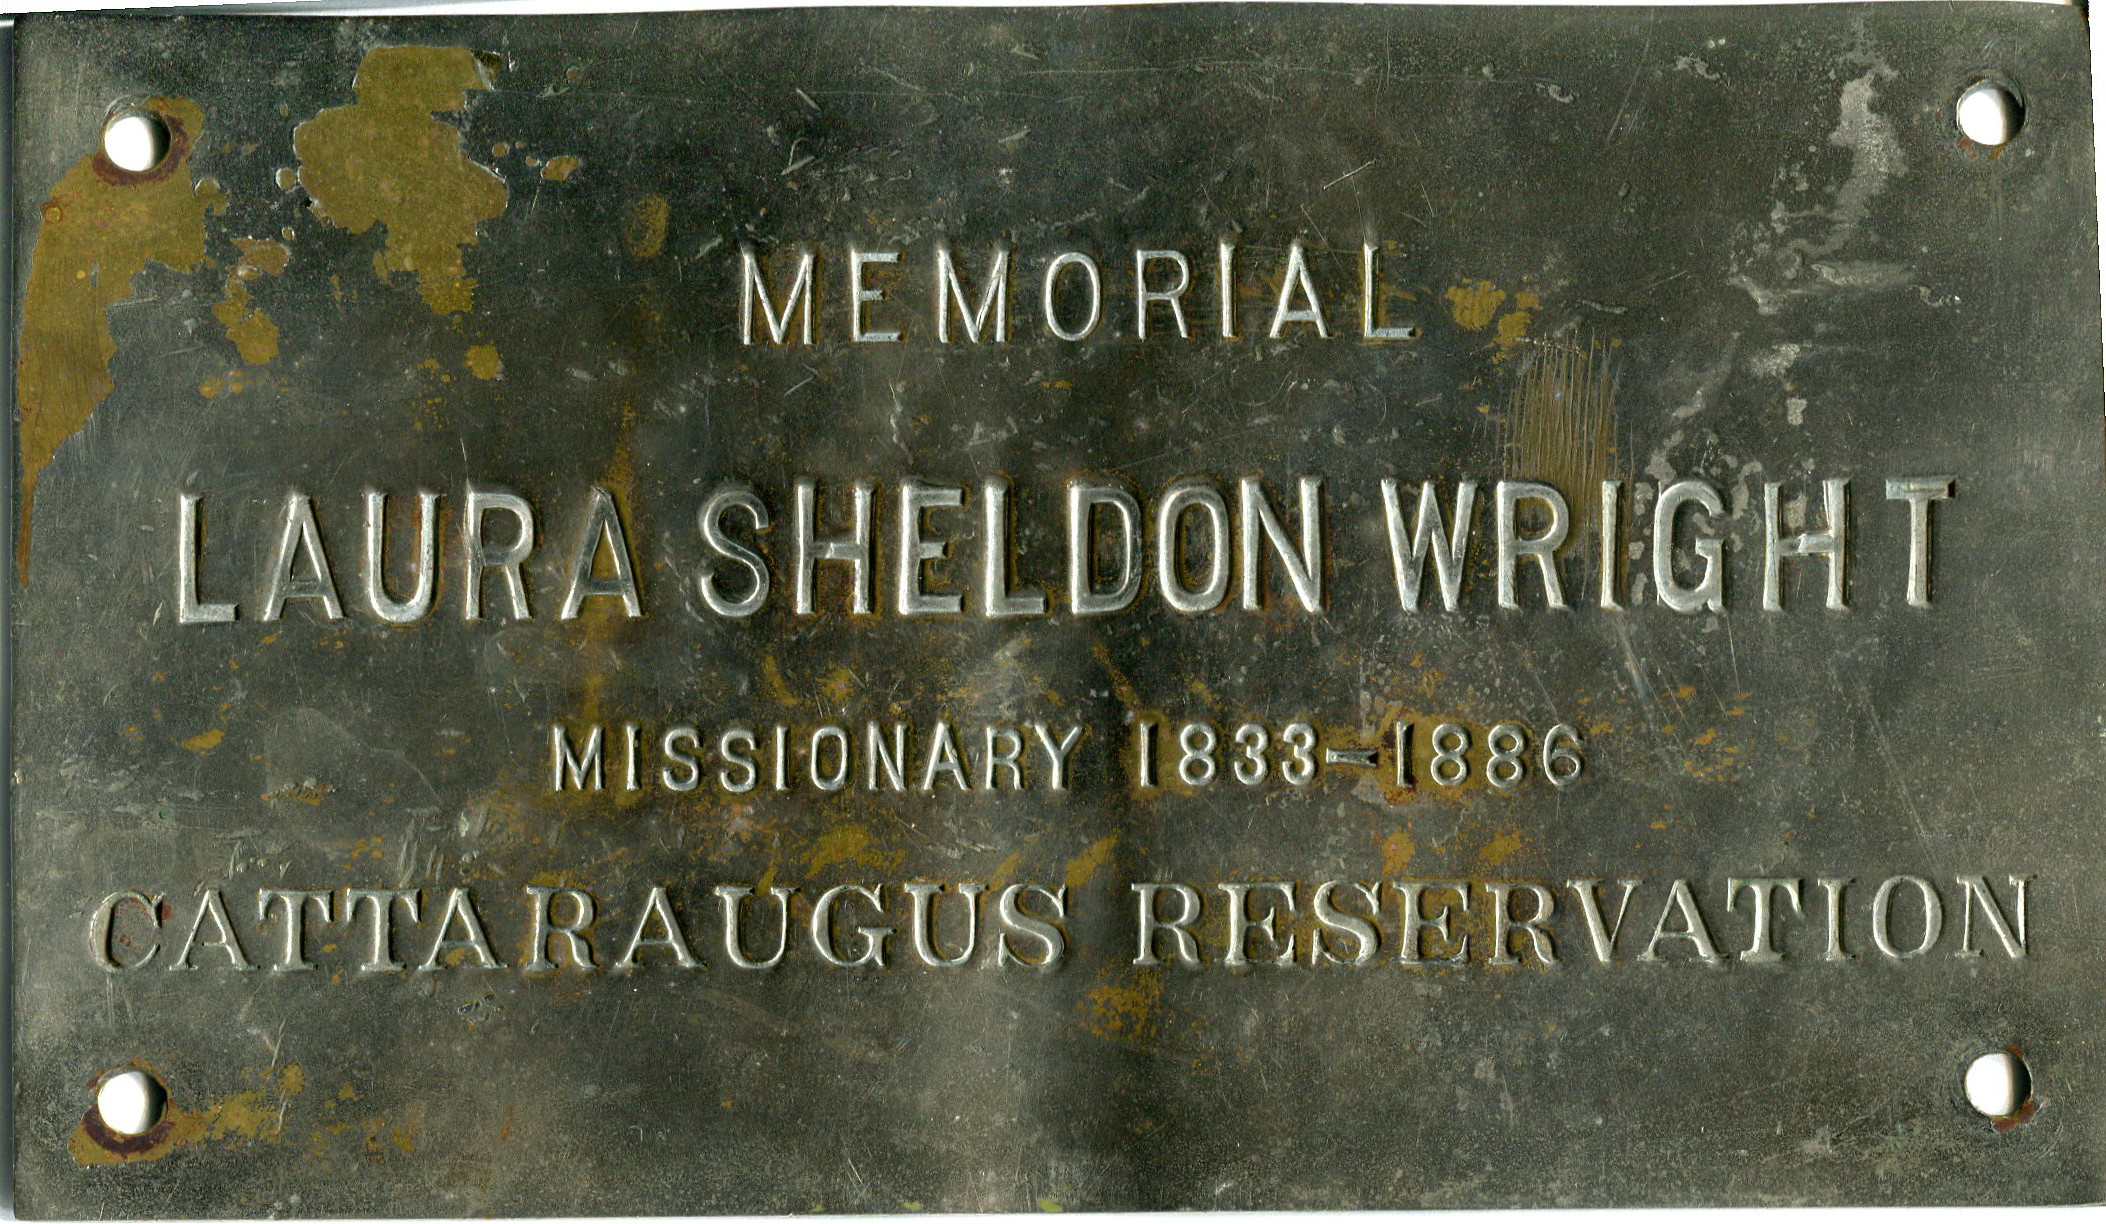 Memorial Plaque of Room 13. This Room was named in Memorial of  Laura Sheldon Wright, a missionary of the Cattaragus Reservation. Her sister, Ella, donated in her stead.